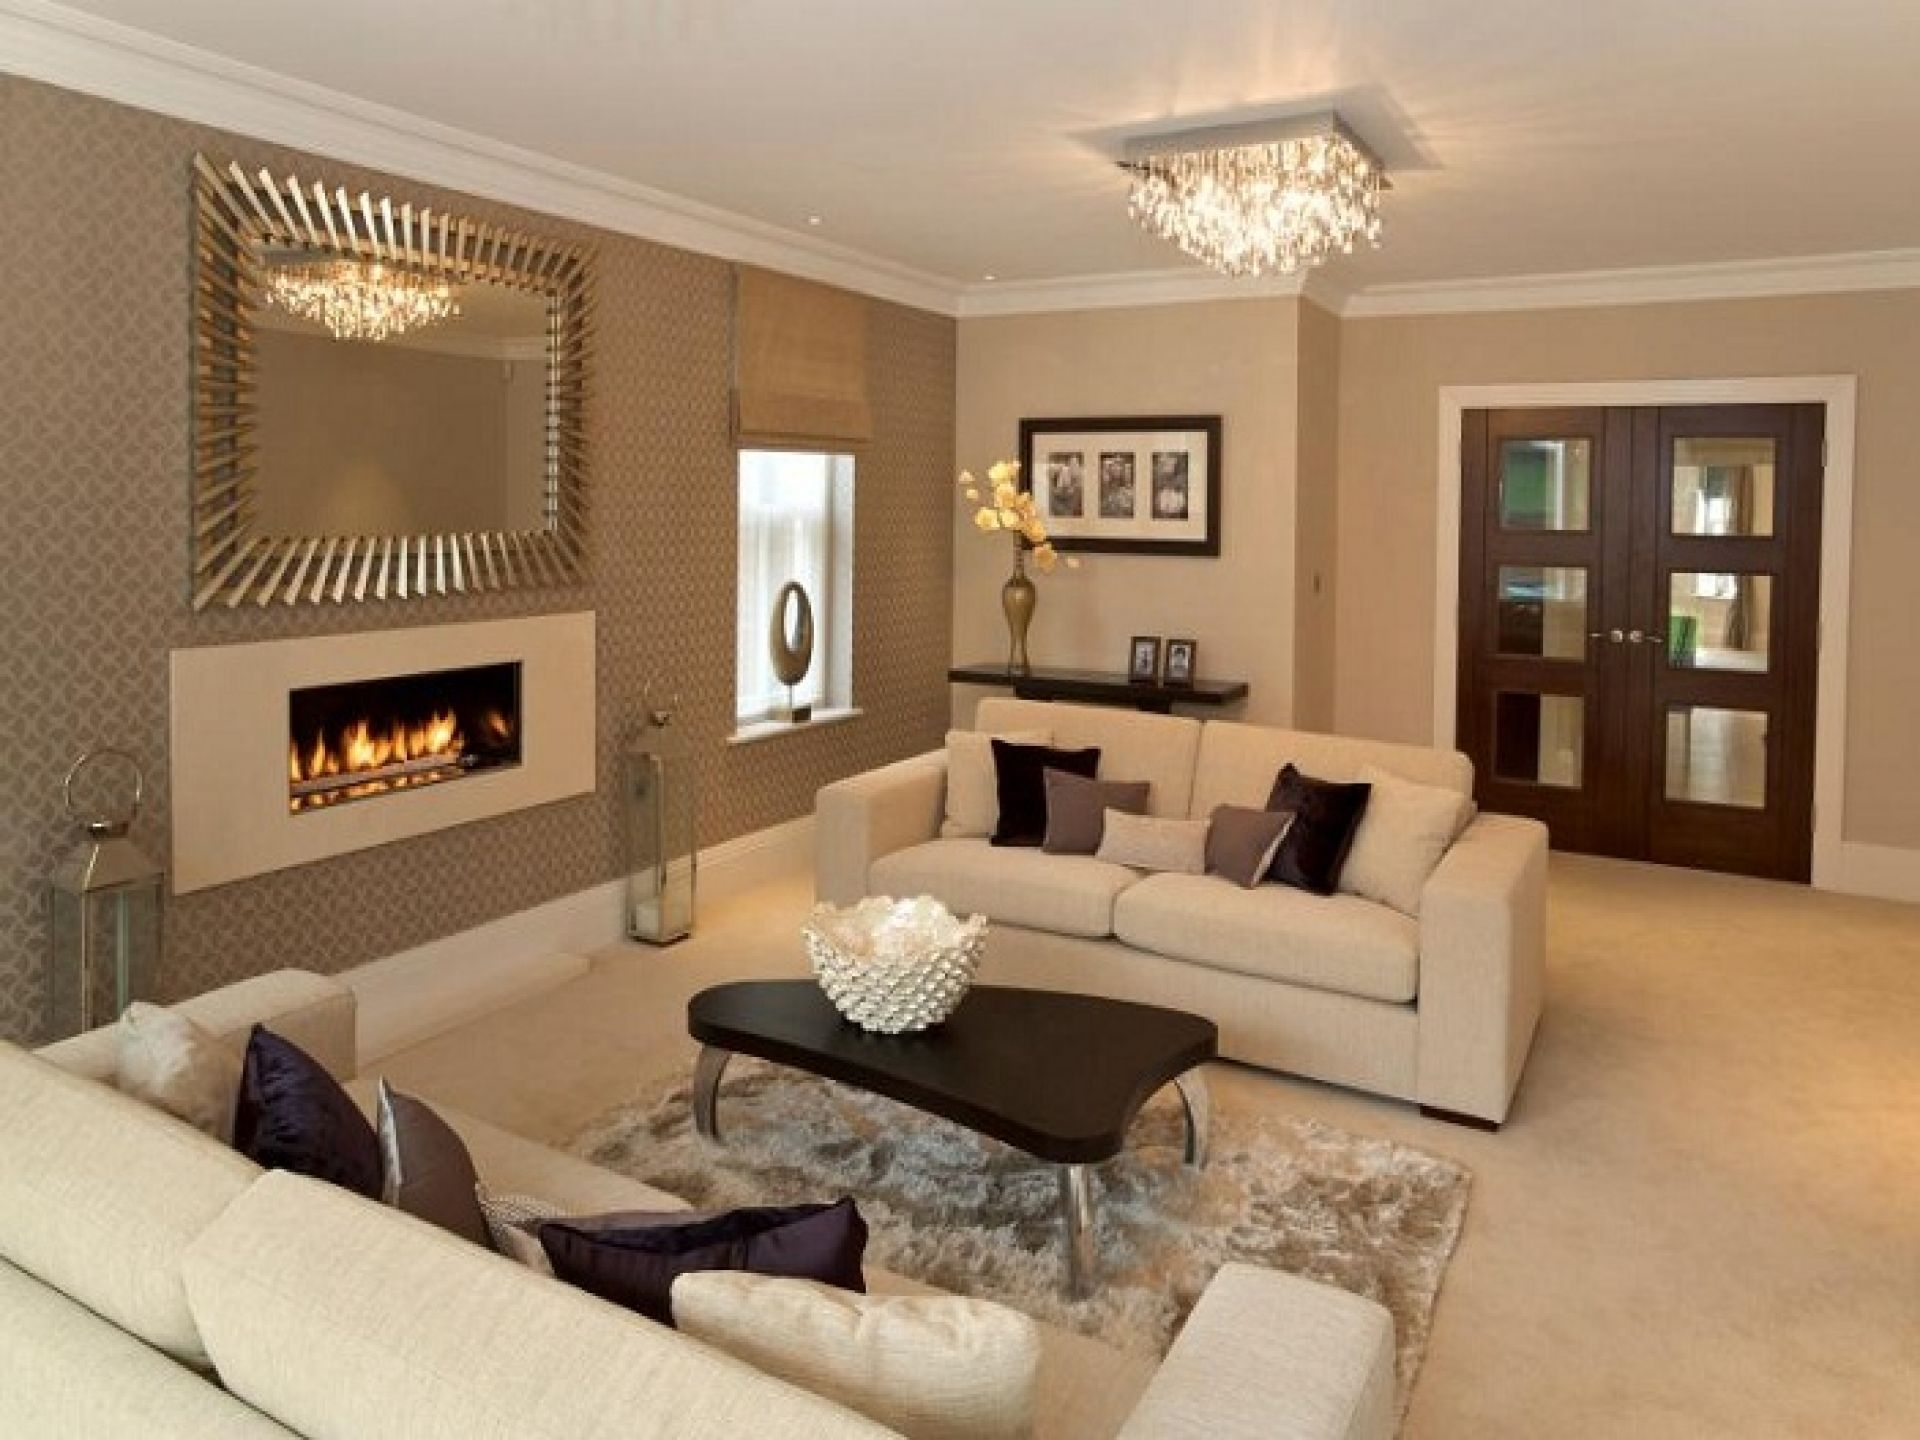 15 exclusive living room ideas for the perfect home living room